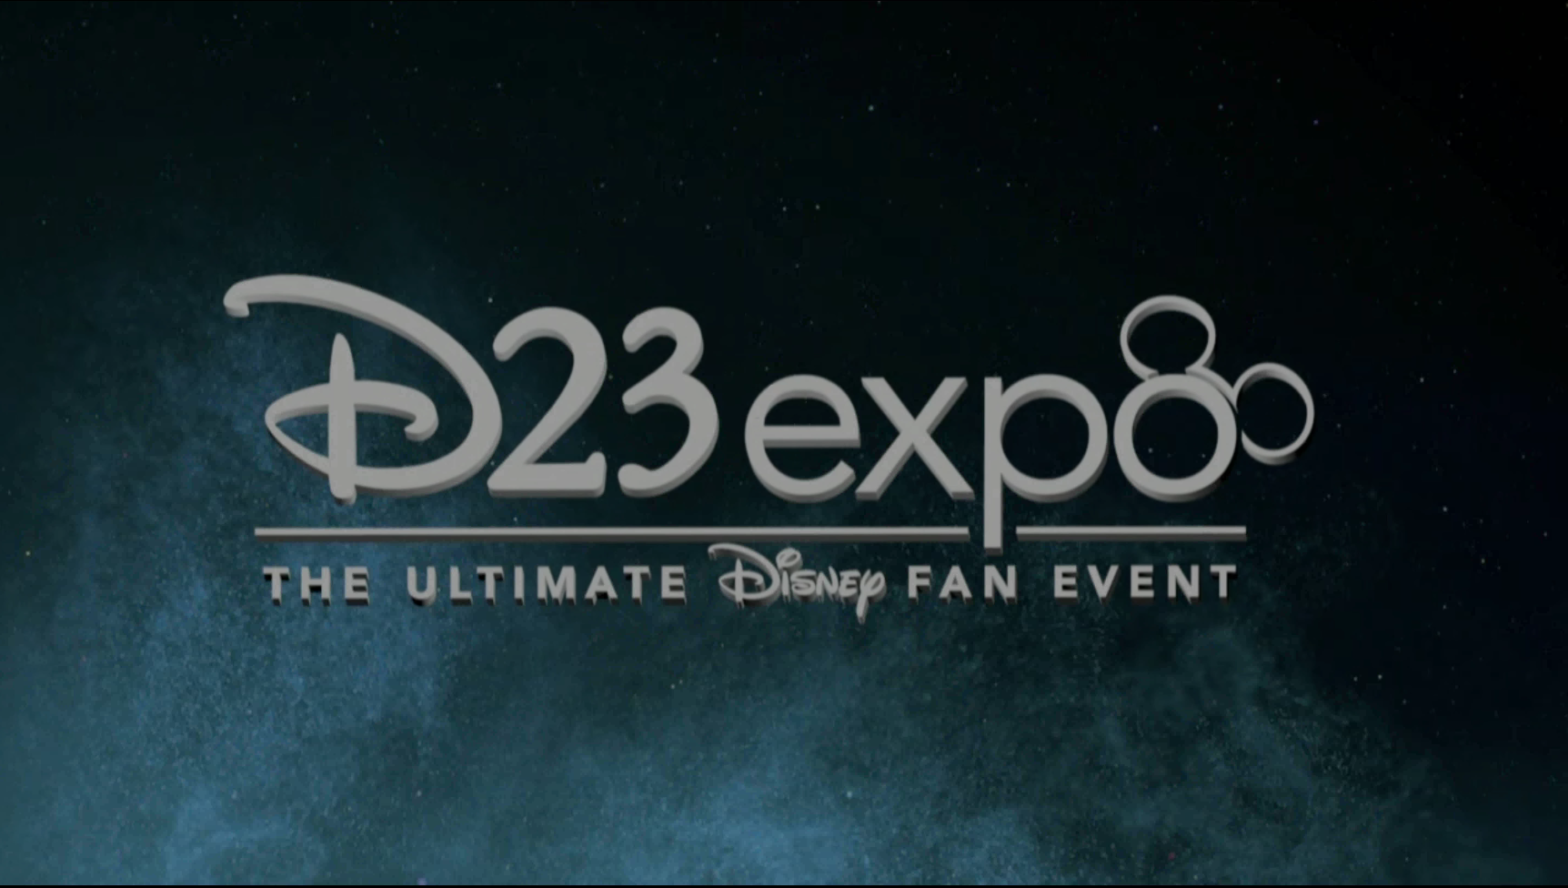 D23 Logo - The ultimate Disney fan event